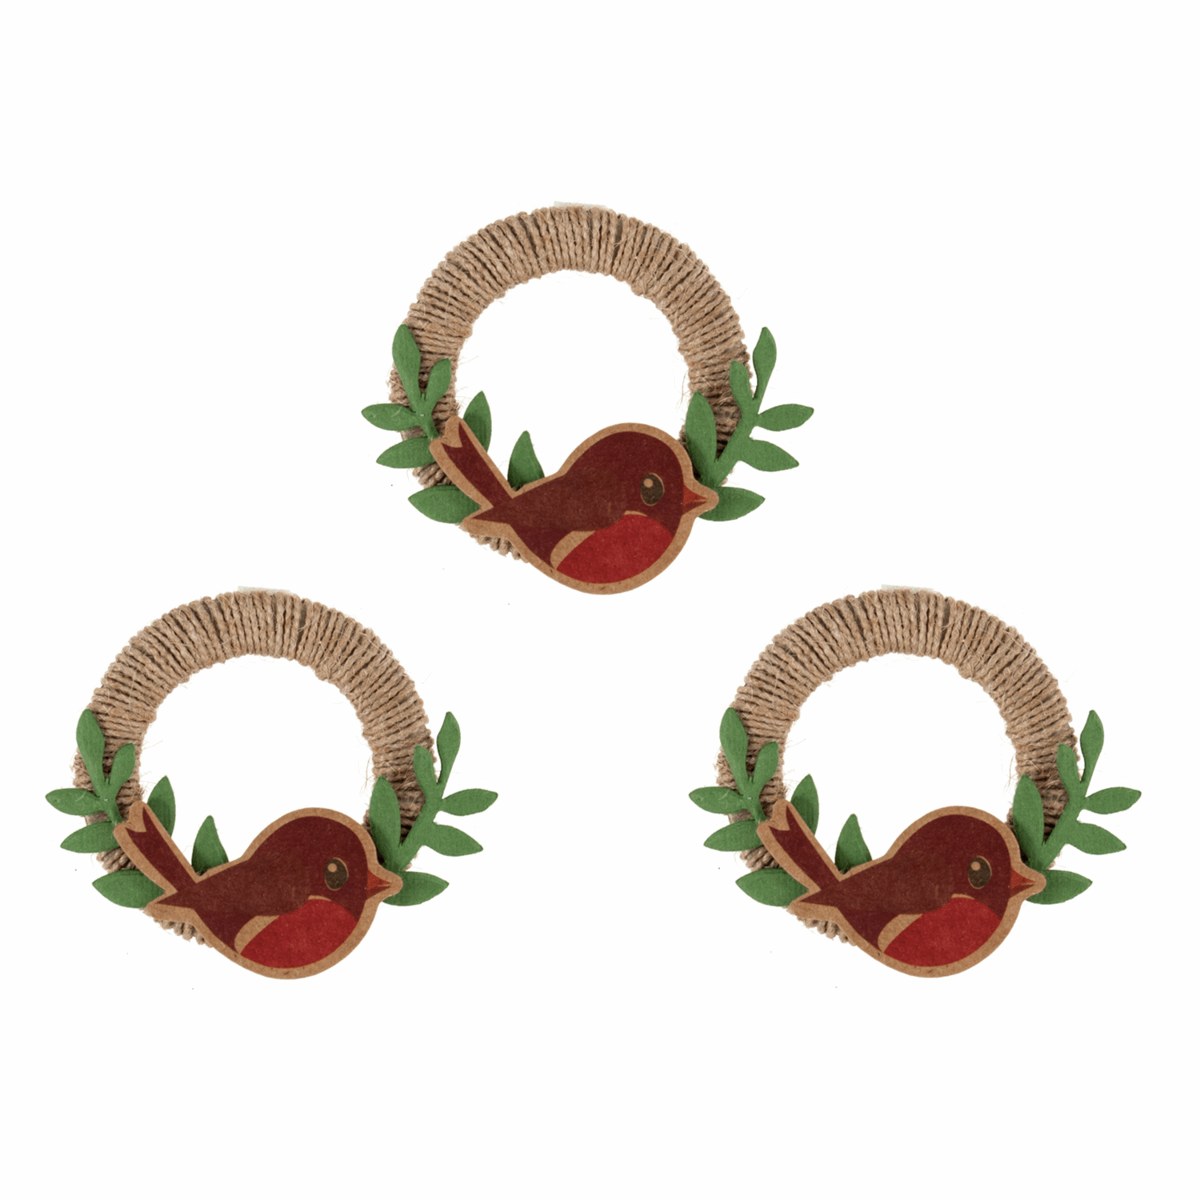 Picture of Craft Embellishments: Robin Jute Wreaths: 3 Pieces